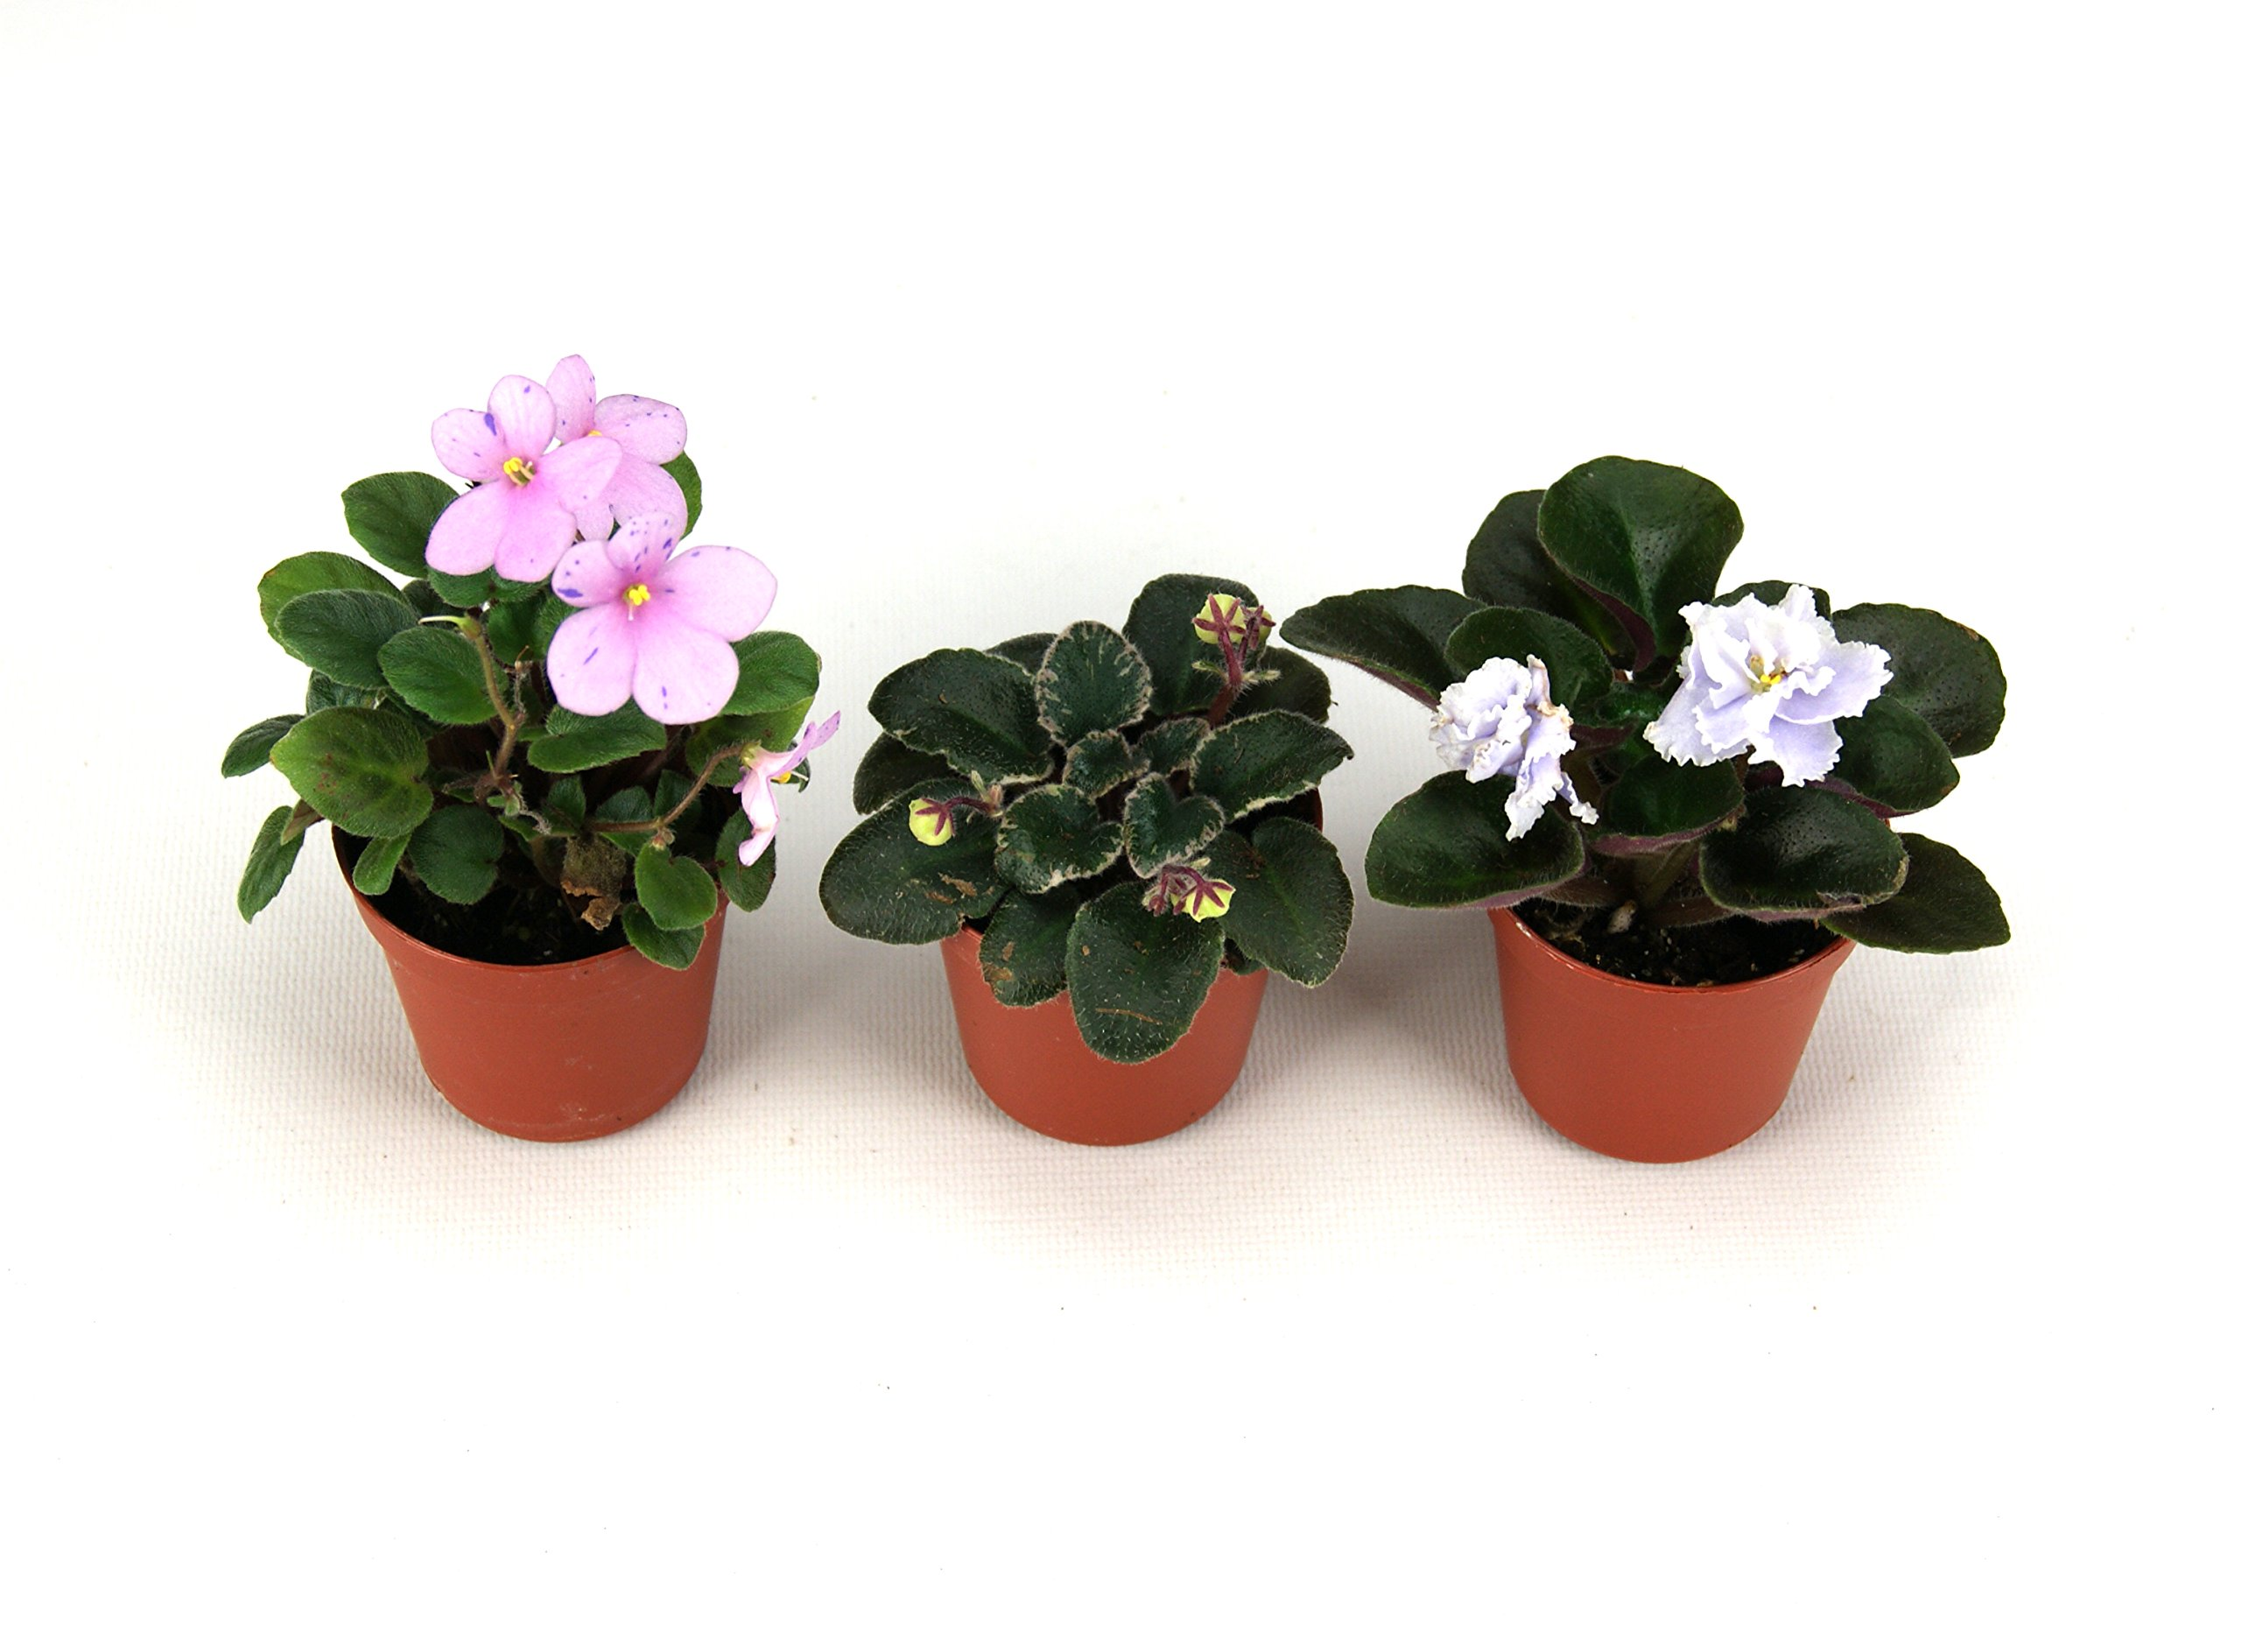 Miniature African Violet 3-Pack (Grower's Choice)